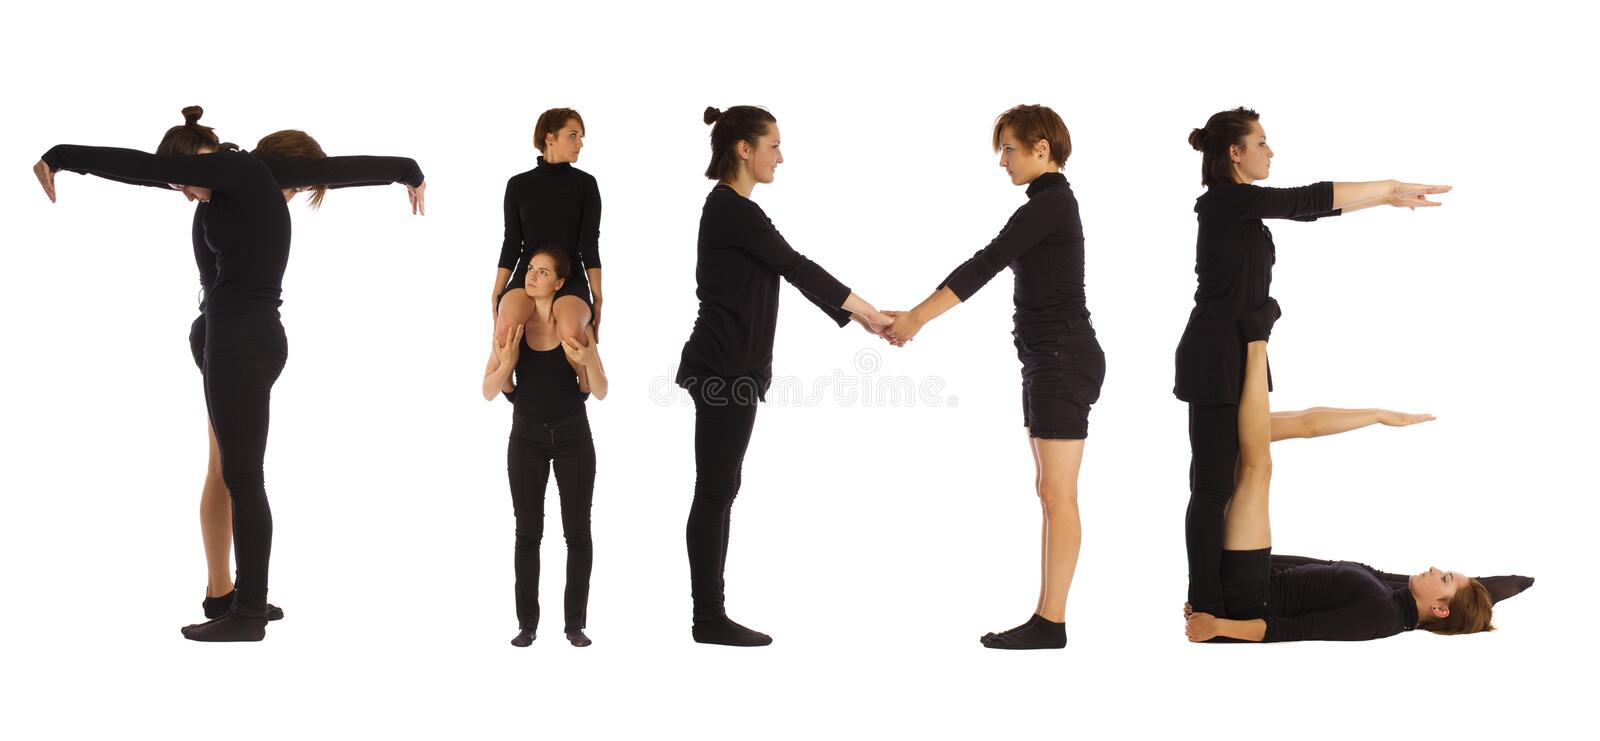 Black dressed people forming TIME word. Over white background royalty free stock image